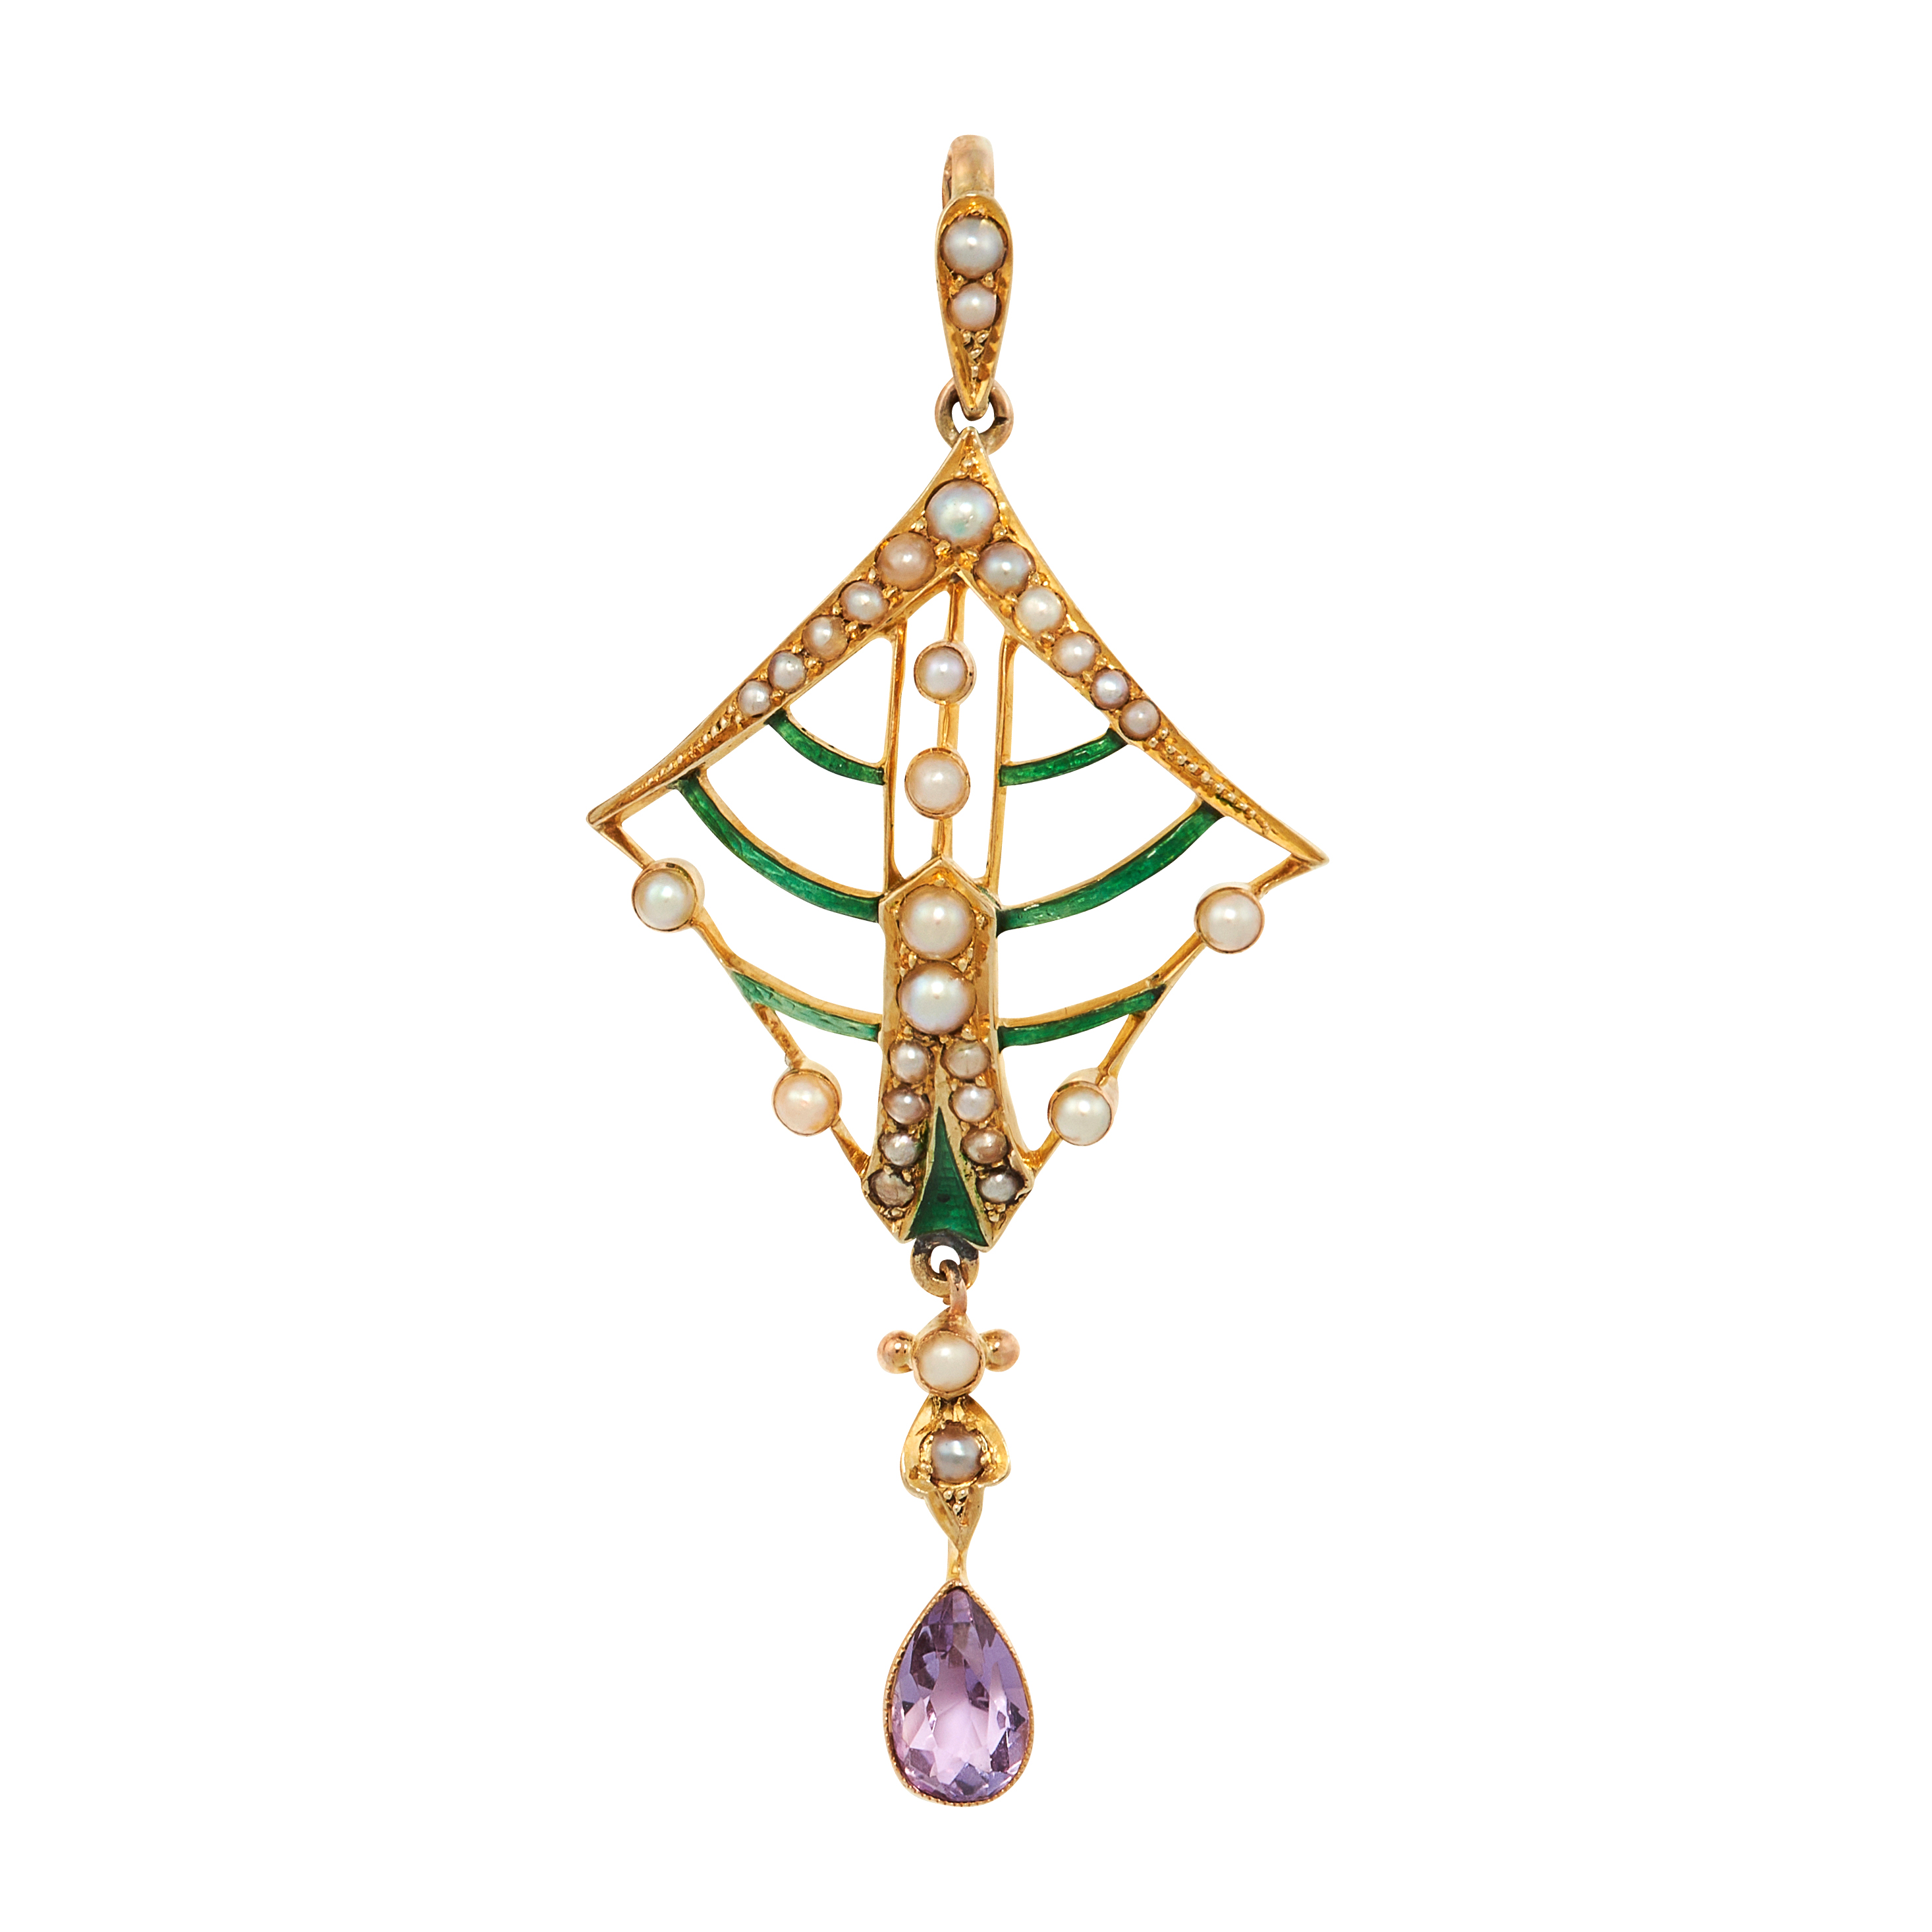 AN ANTIQUE AMETHYST, ENAMEL AND PEARL SUFFRAGETTE PENDANT, CIRCA 1900 in 15ct yellow gold, set